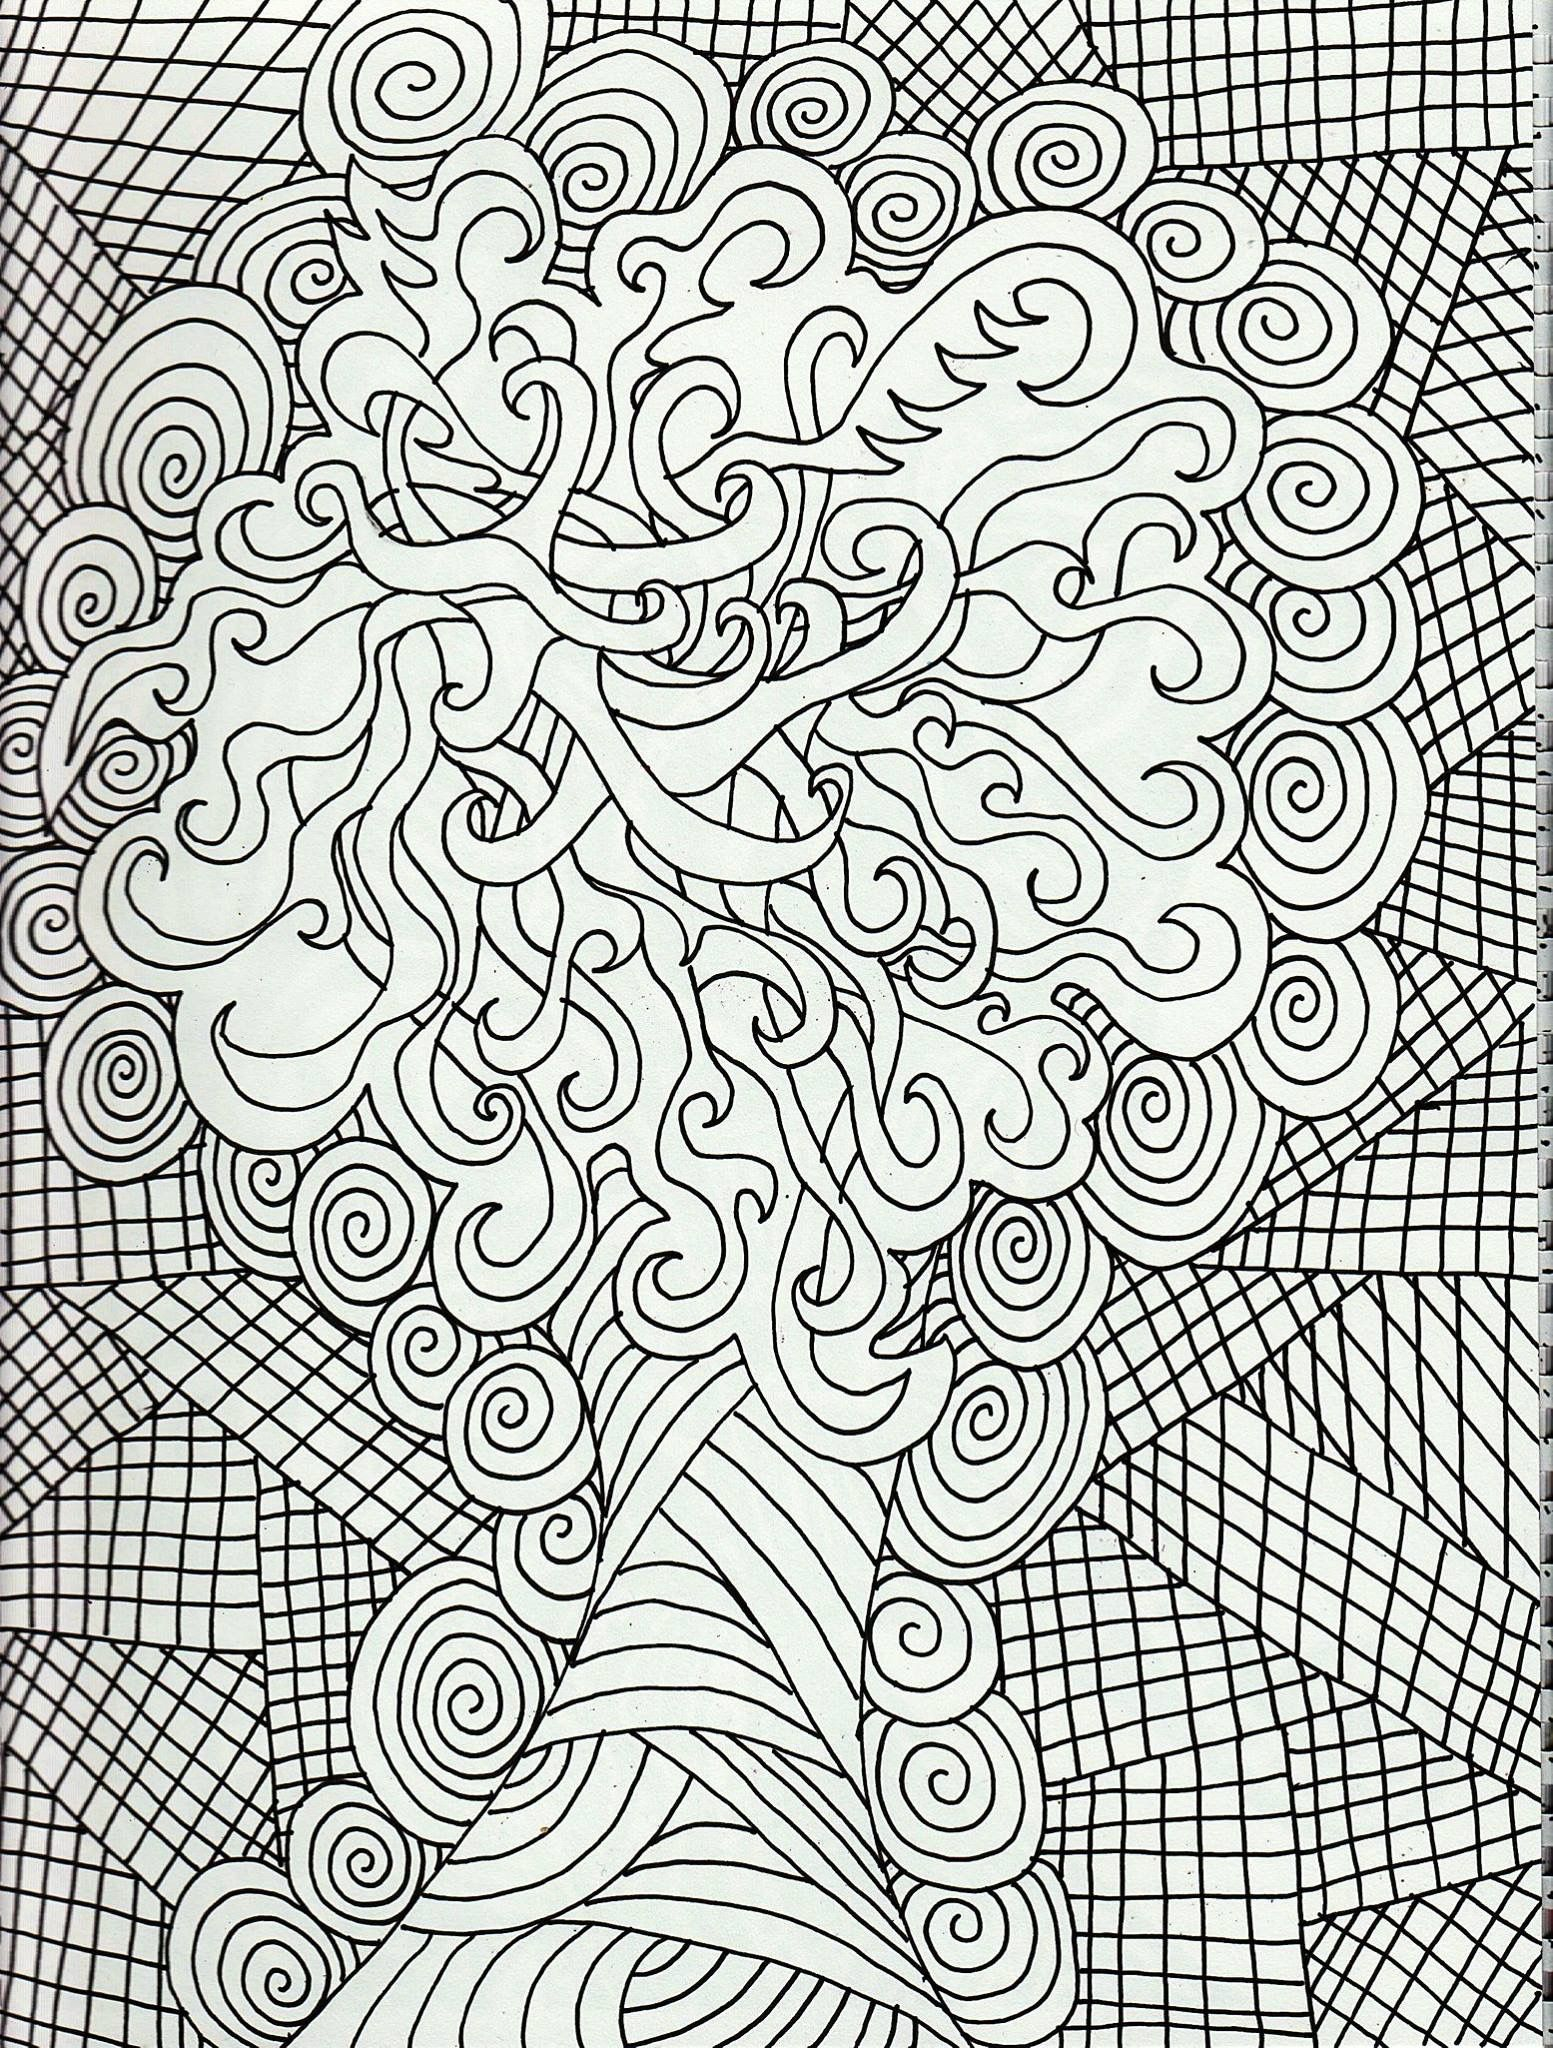 Free coloring pages complex - Explore Free Adult Coloring Pages And More